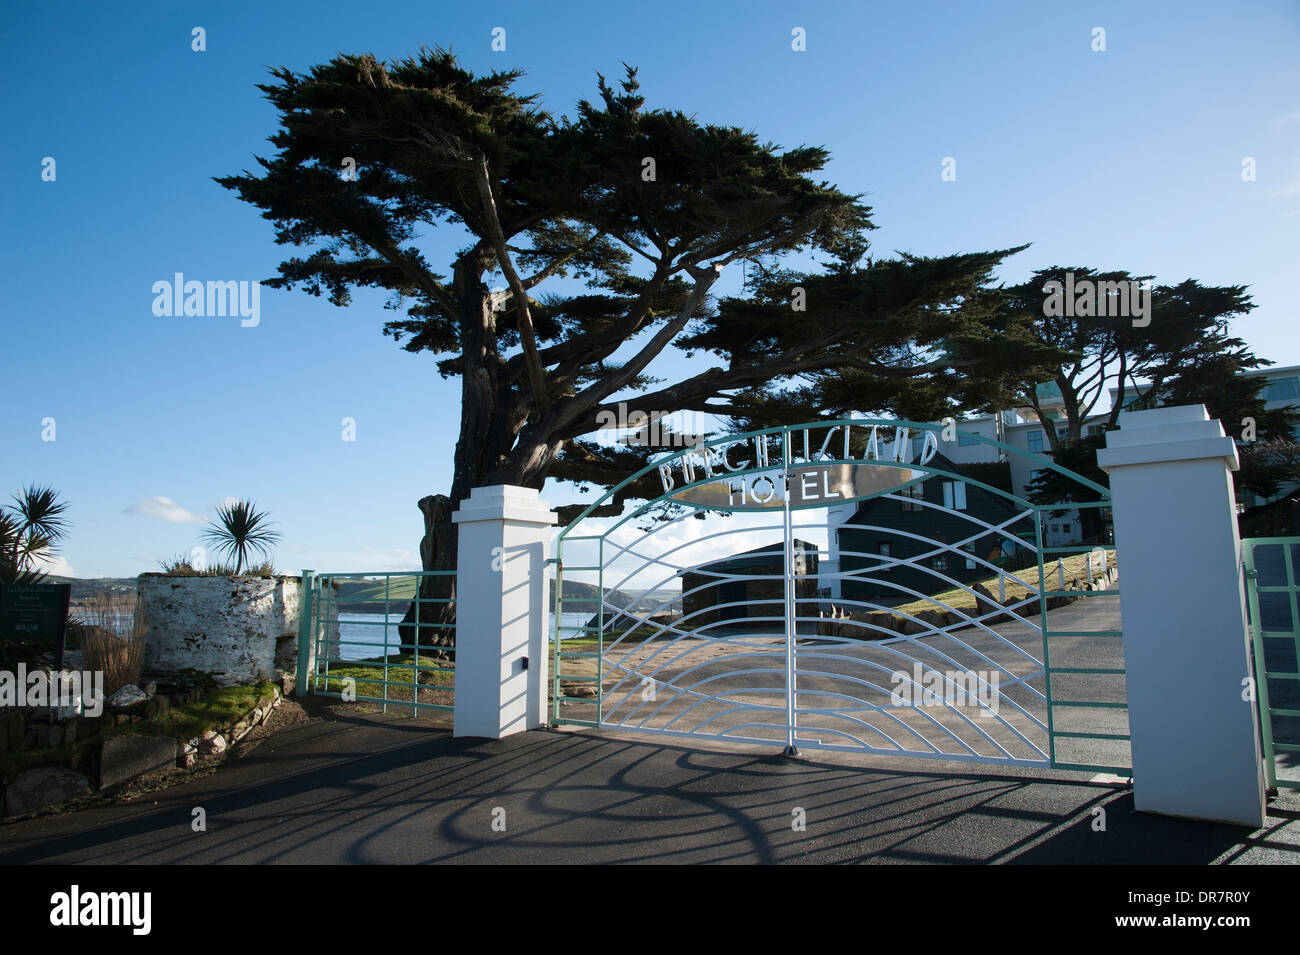 Burgh Island Hotel entrance gates South Devon UK - Stock Image